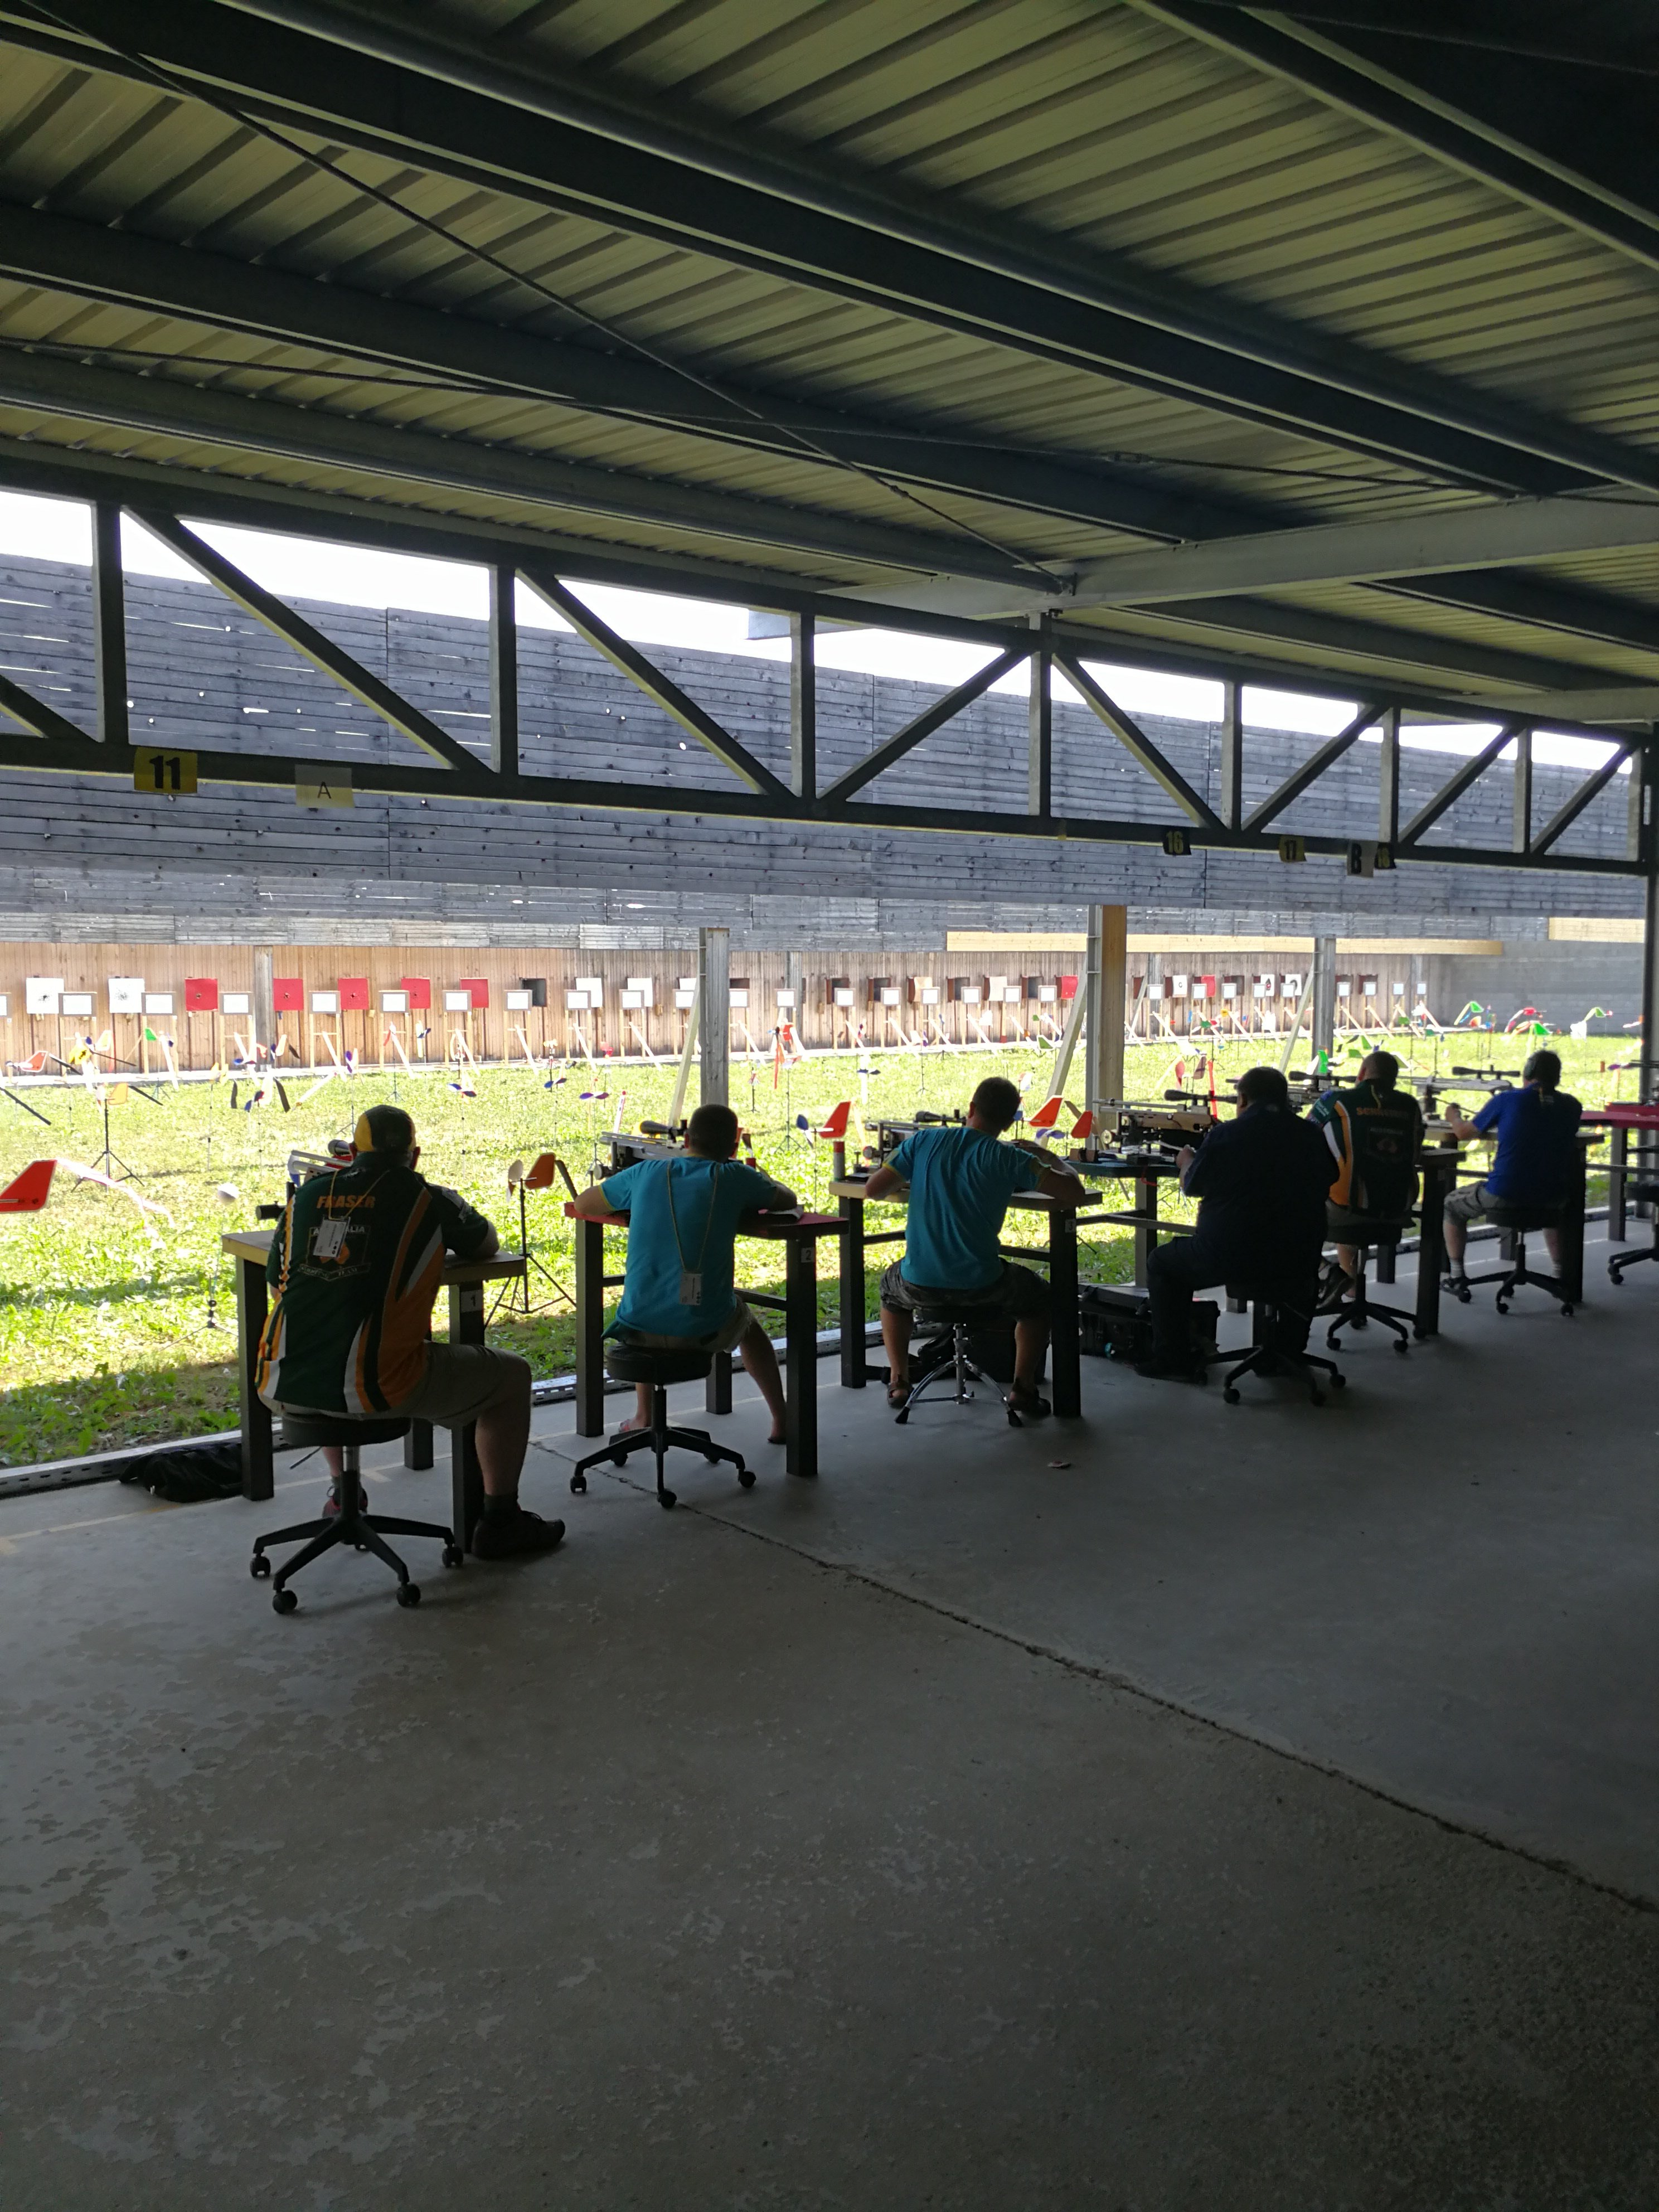 A Benchrest riflescope Competition - us